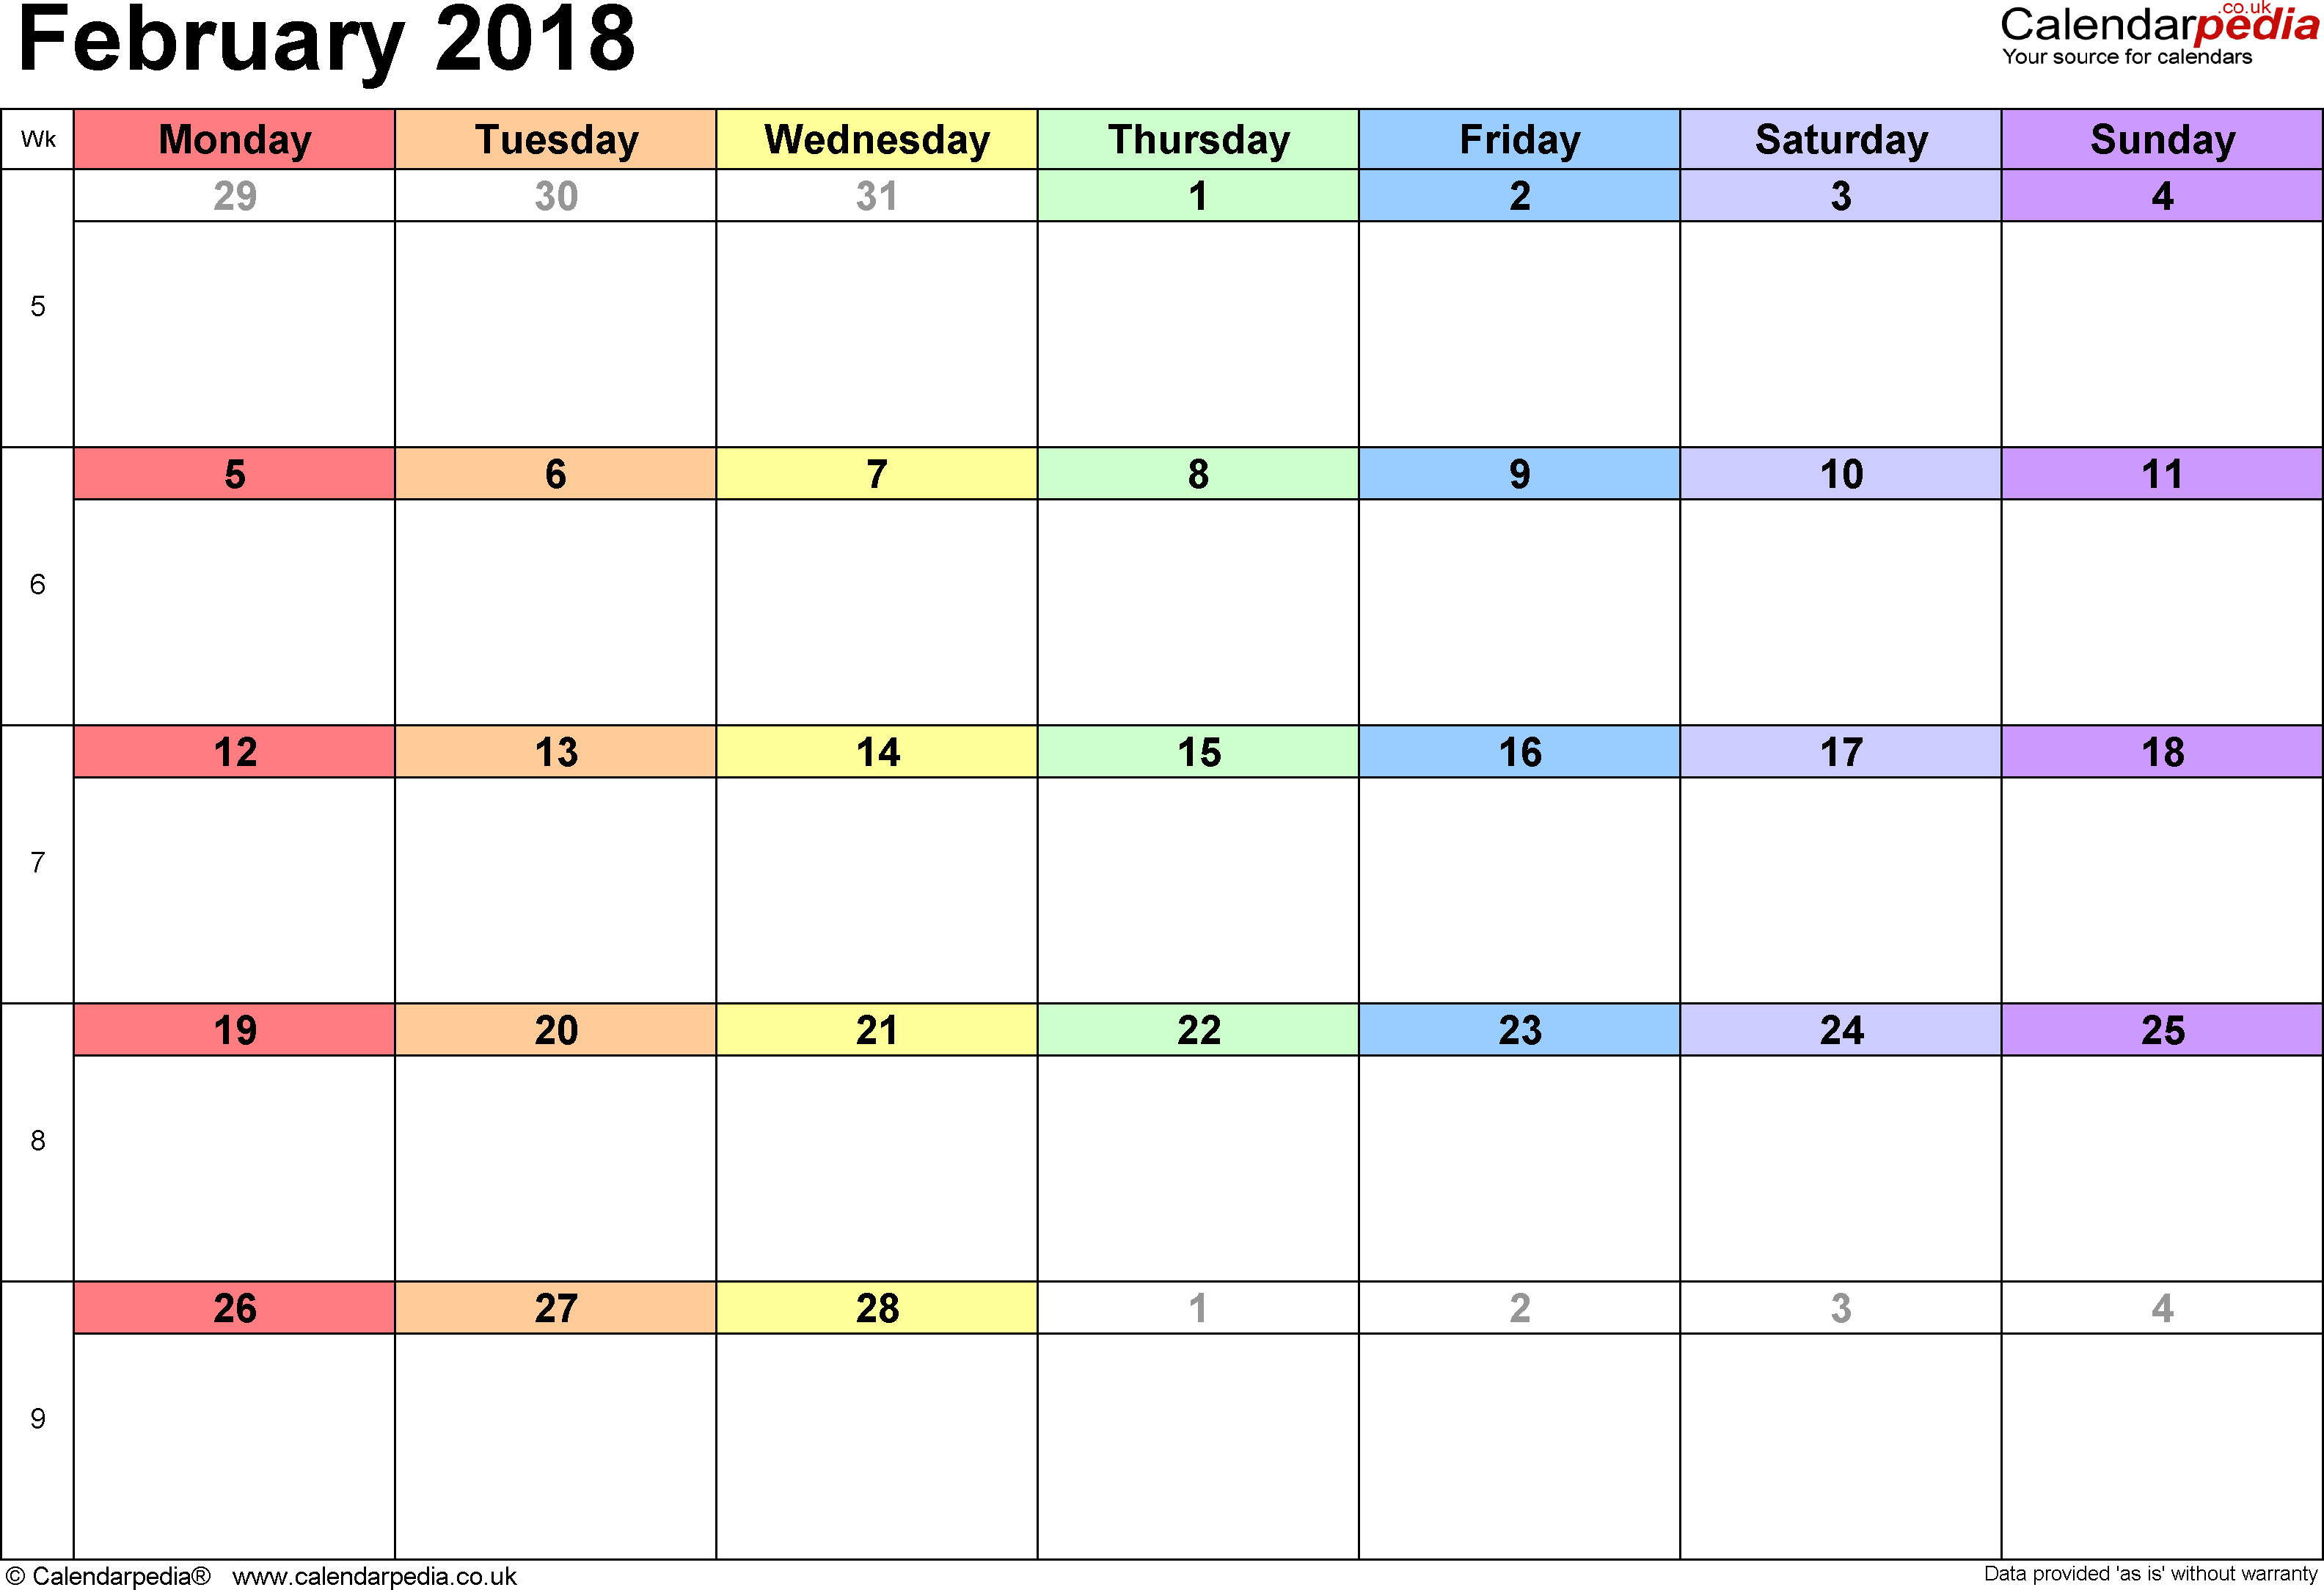 calendar february 2018 uk bank holidays excel pdf word templates